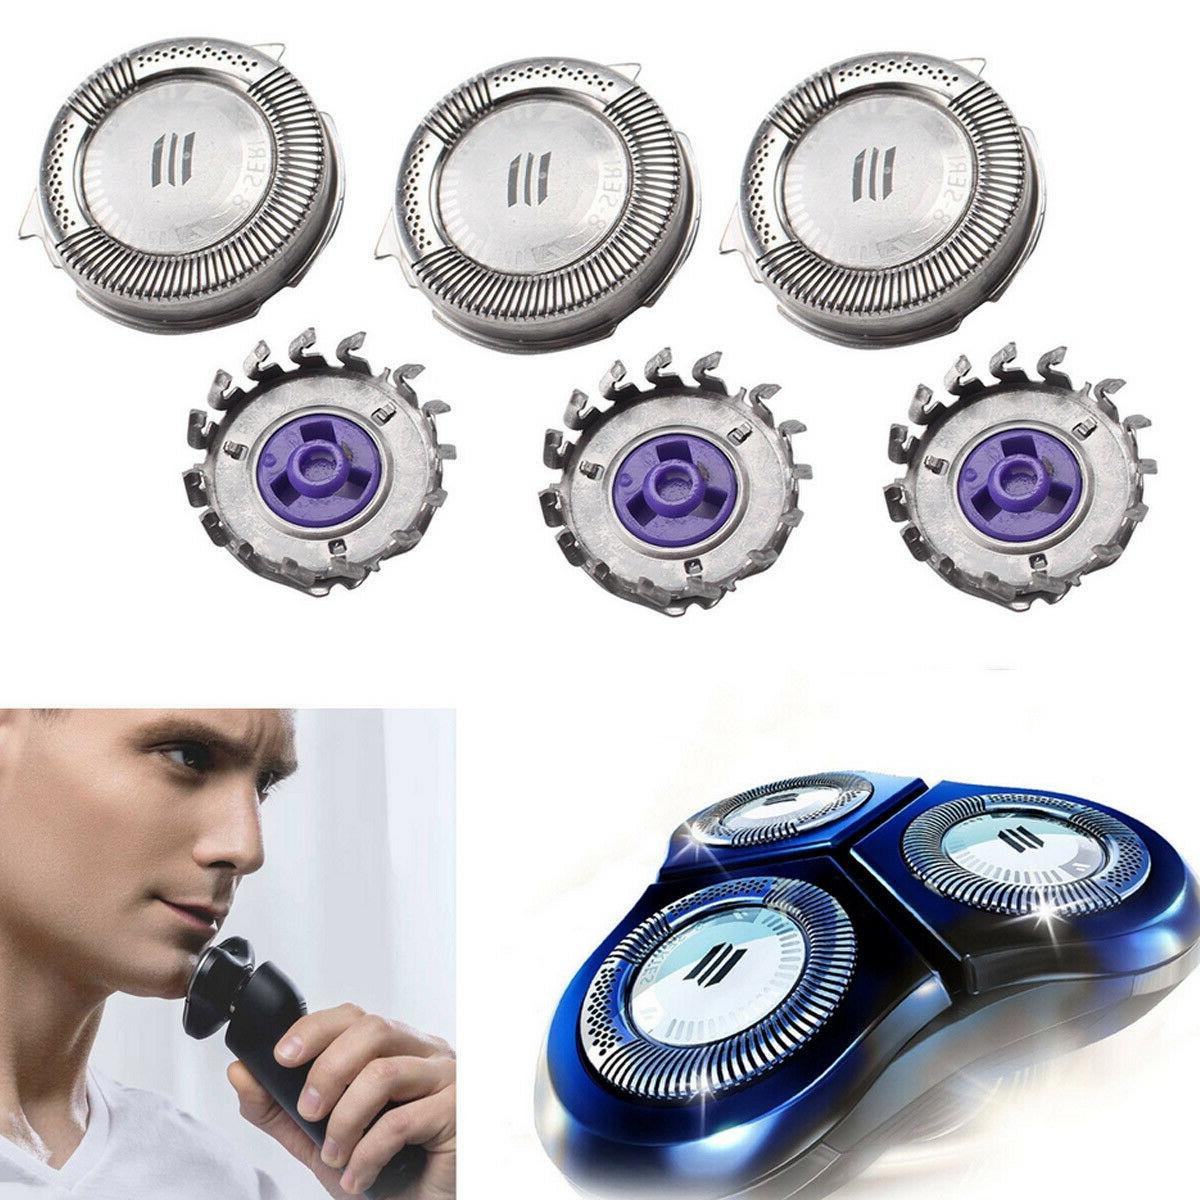 3x replacement shaver blades heads for philips